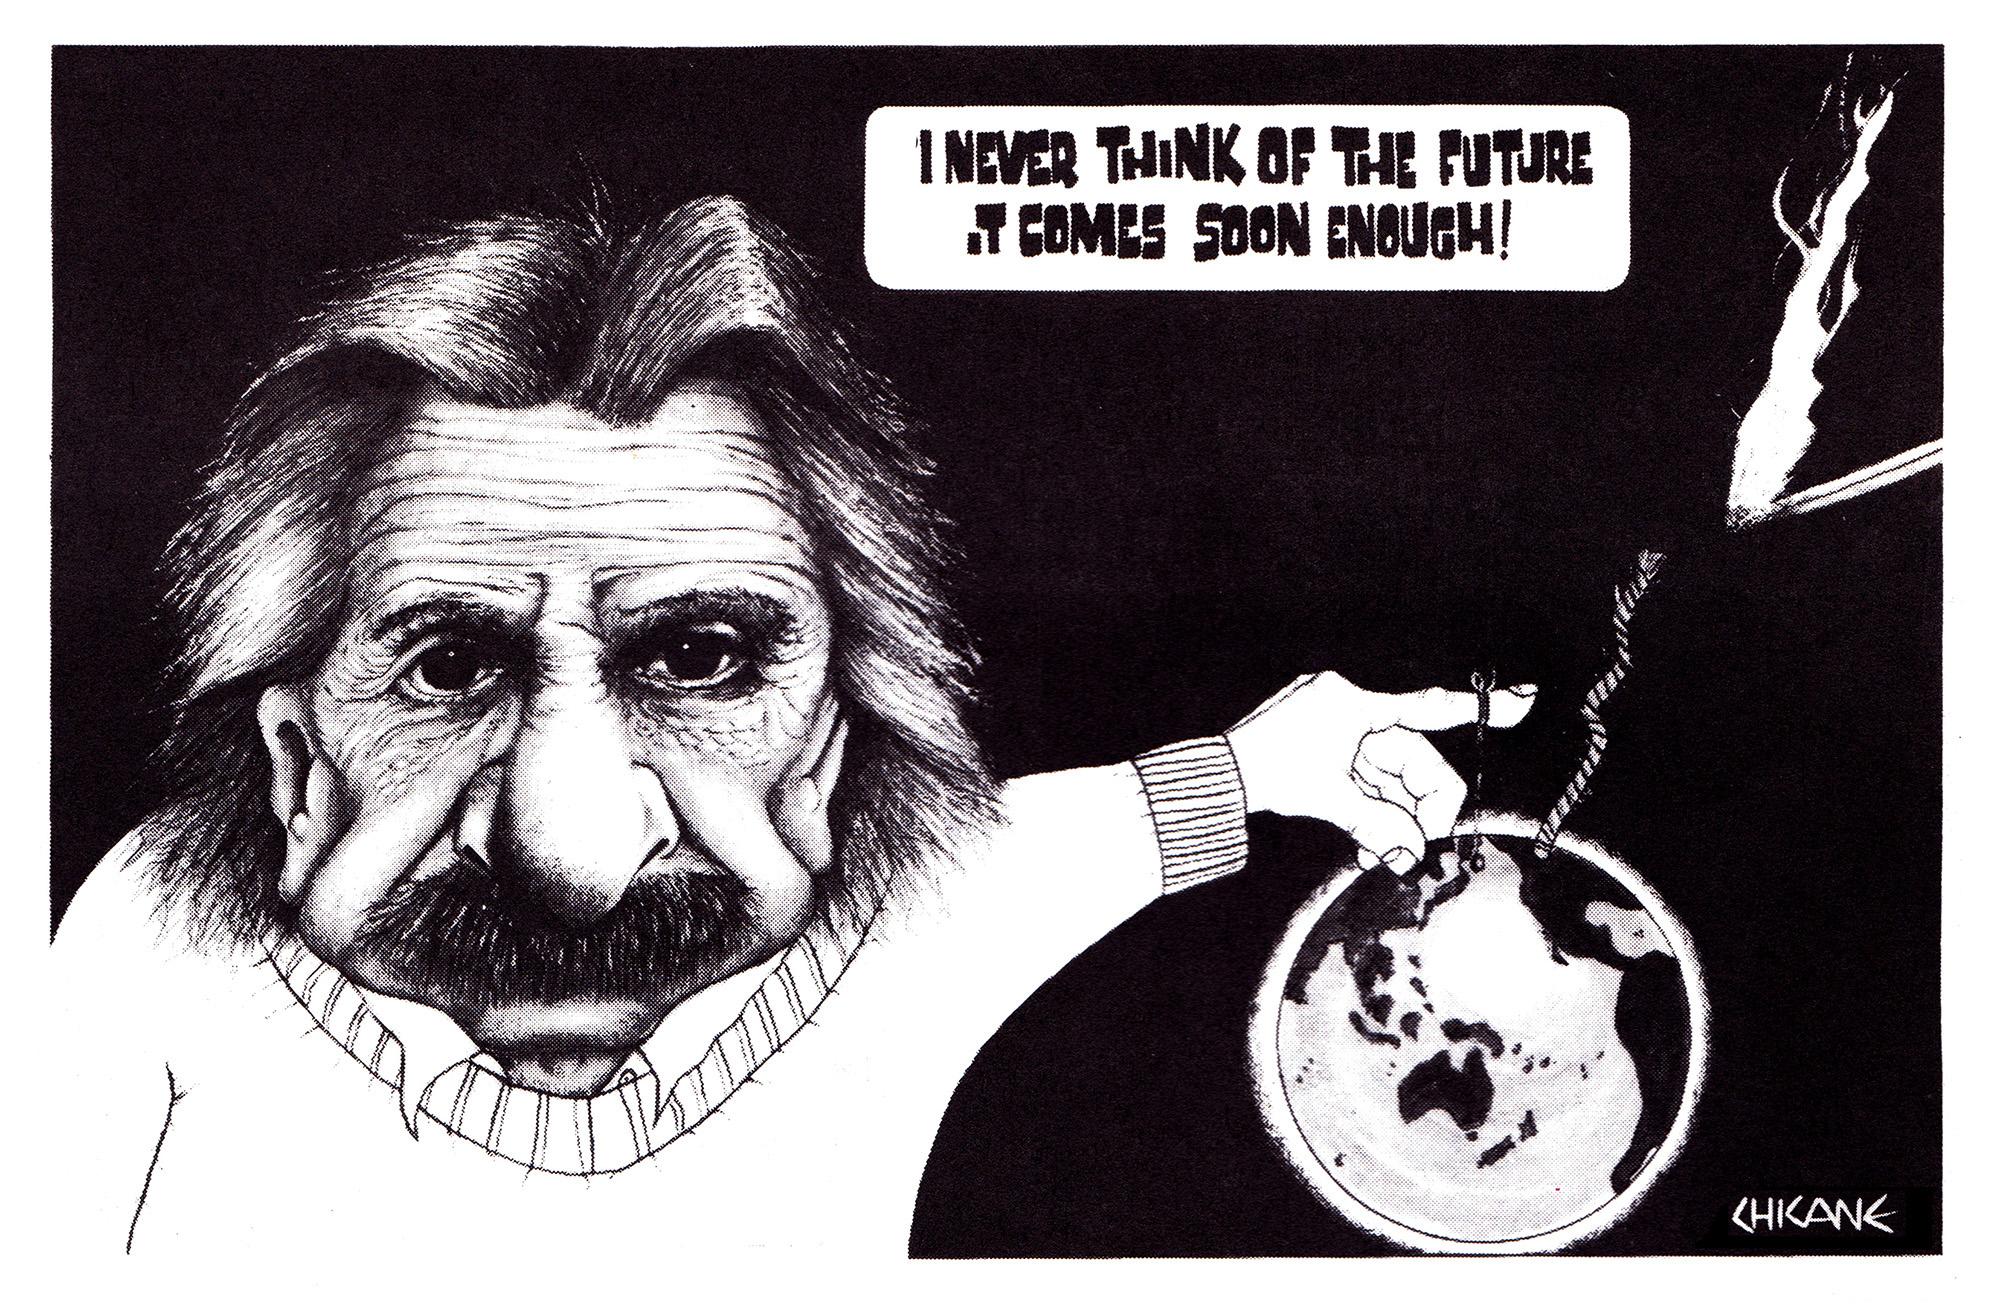 Einstein I never think of the future it comes soon enough. Cartoon by Chicane